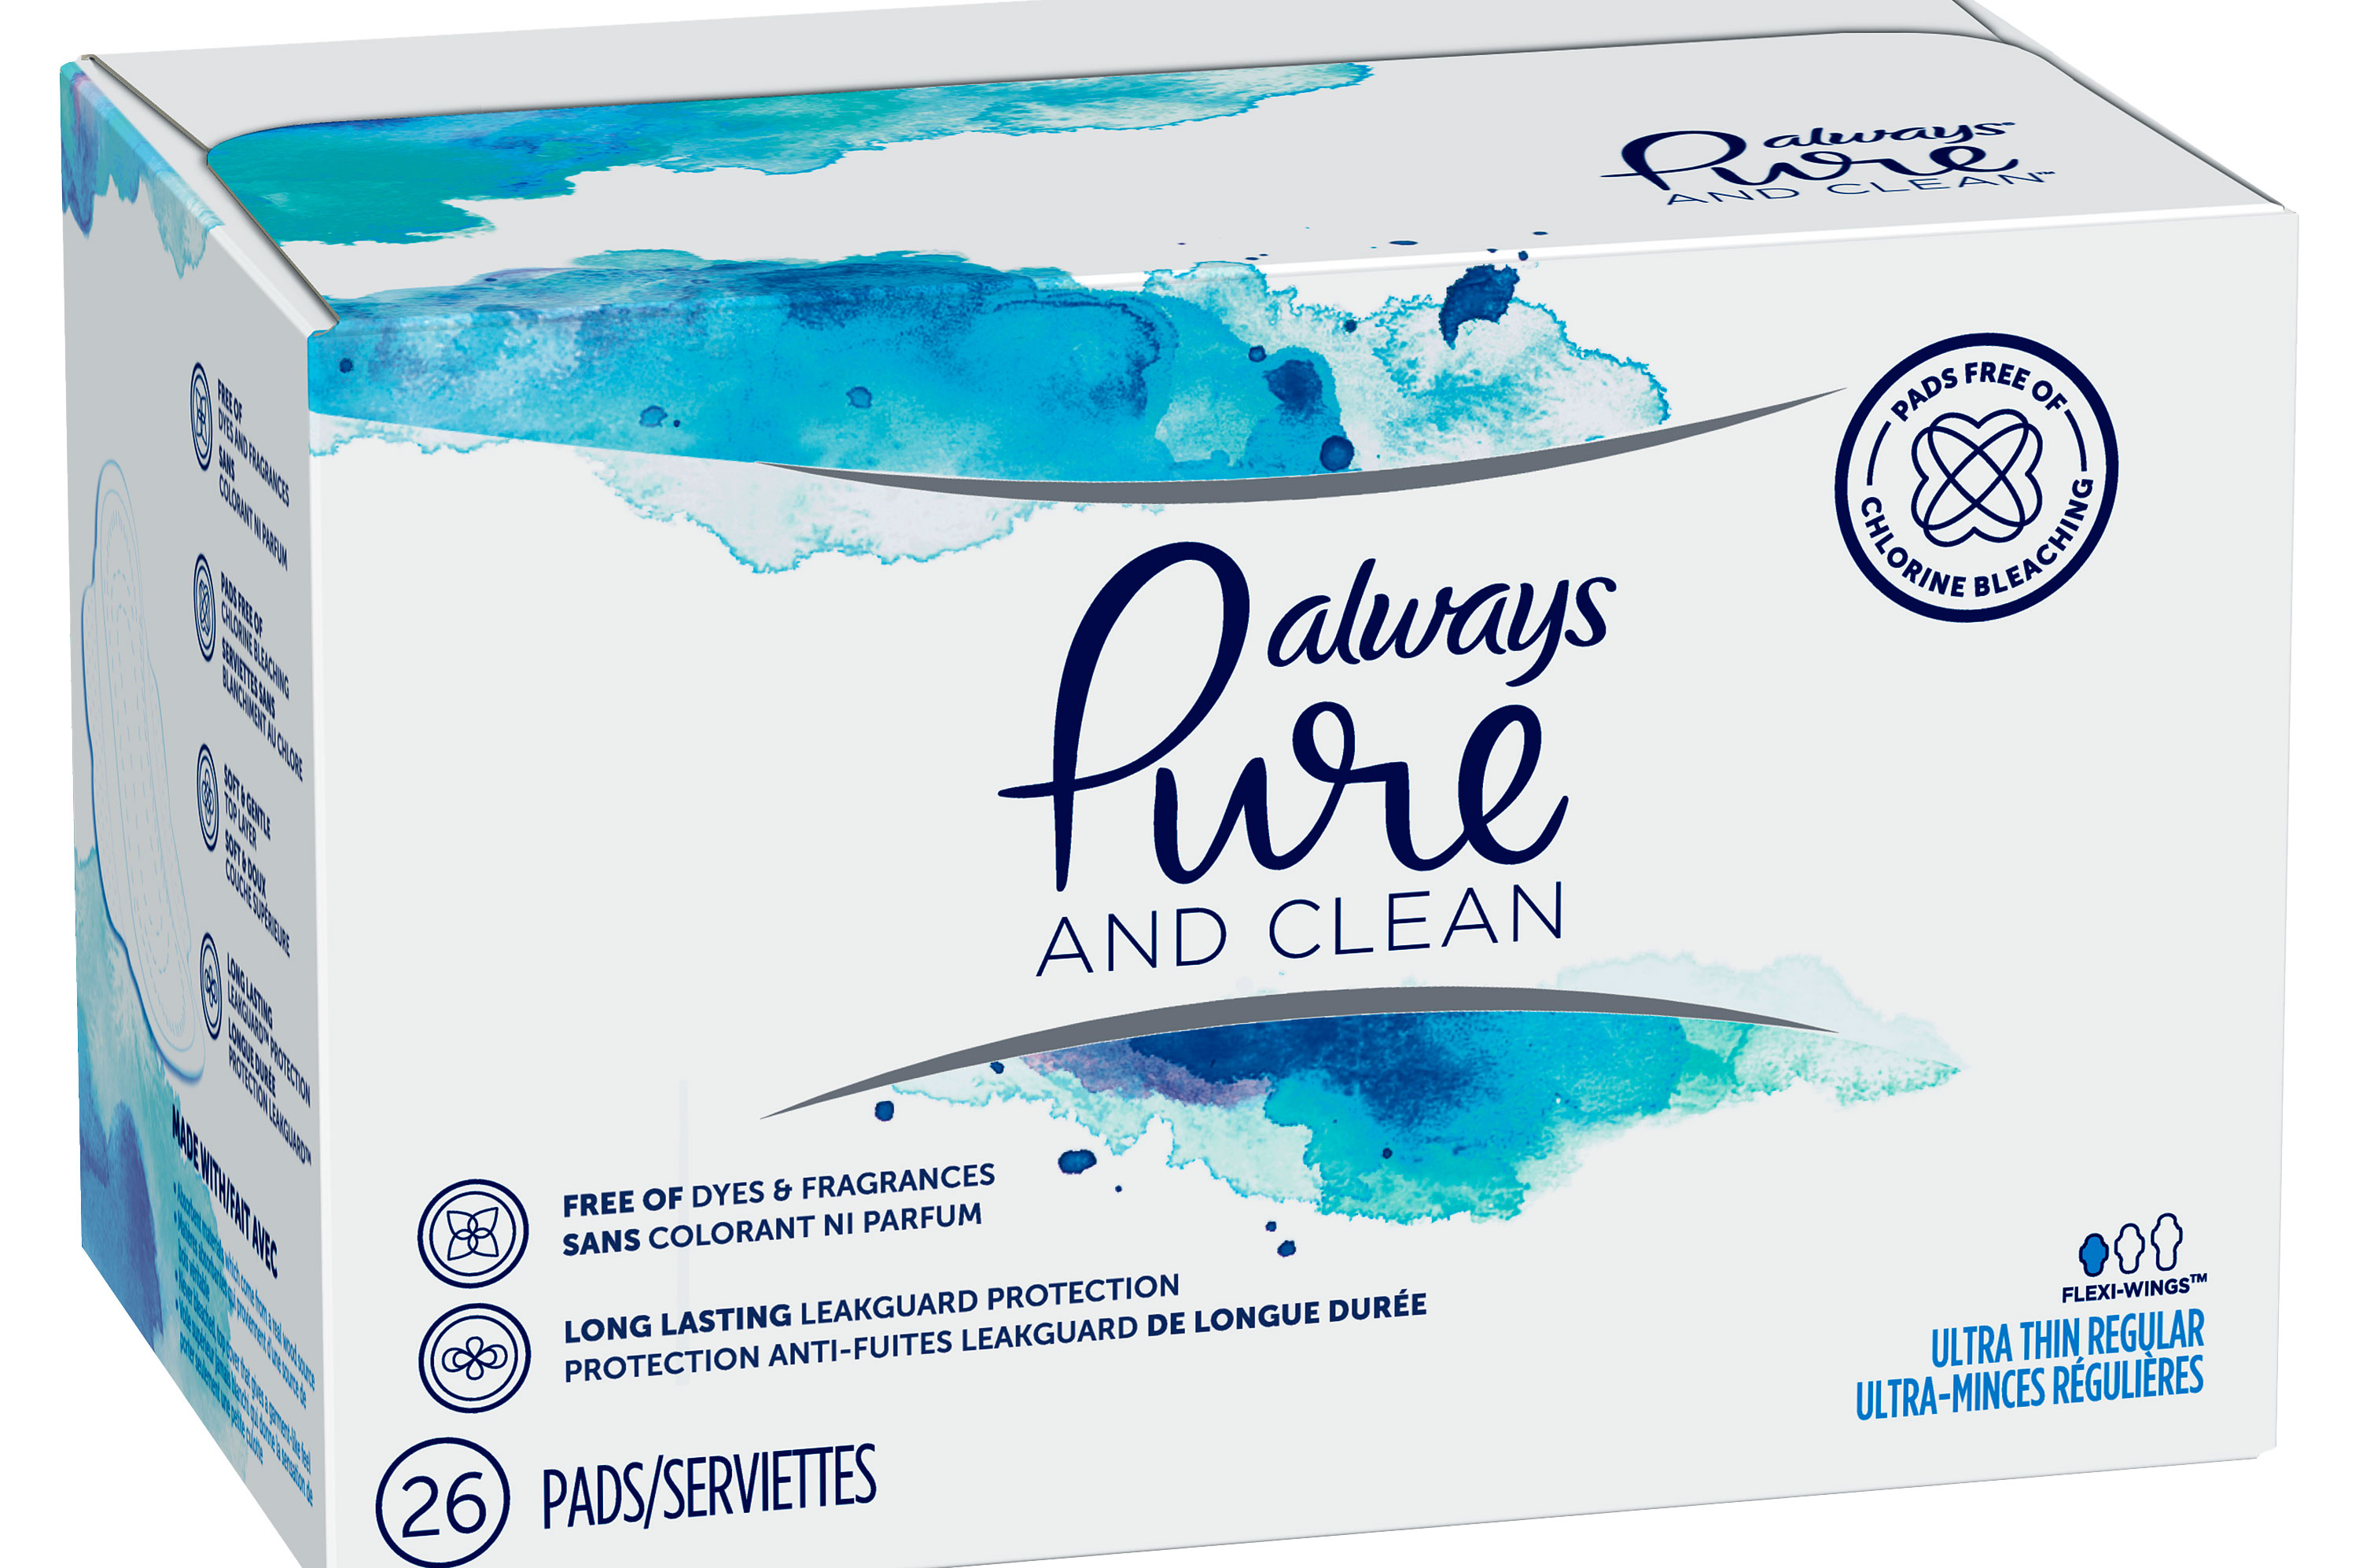 Eric Ries P&G Always Pure and Clean